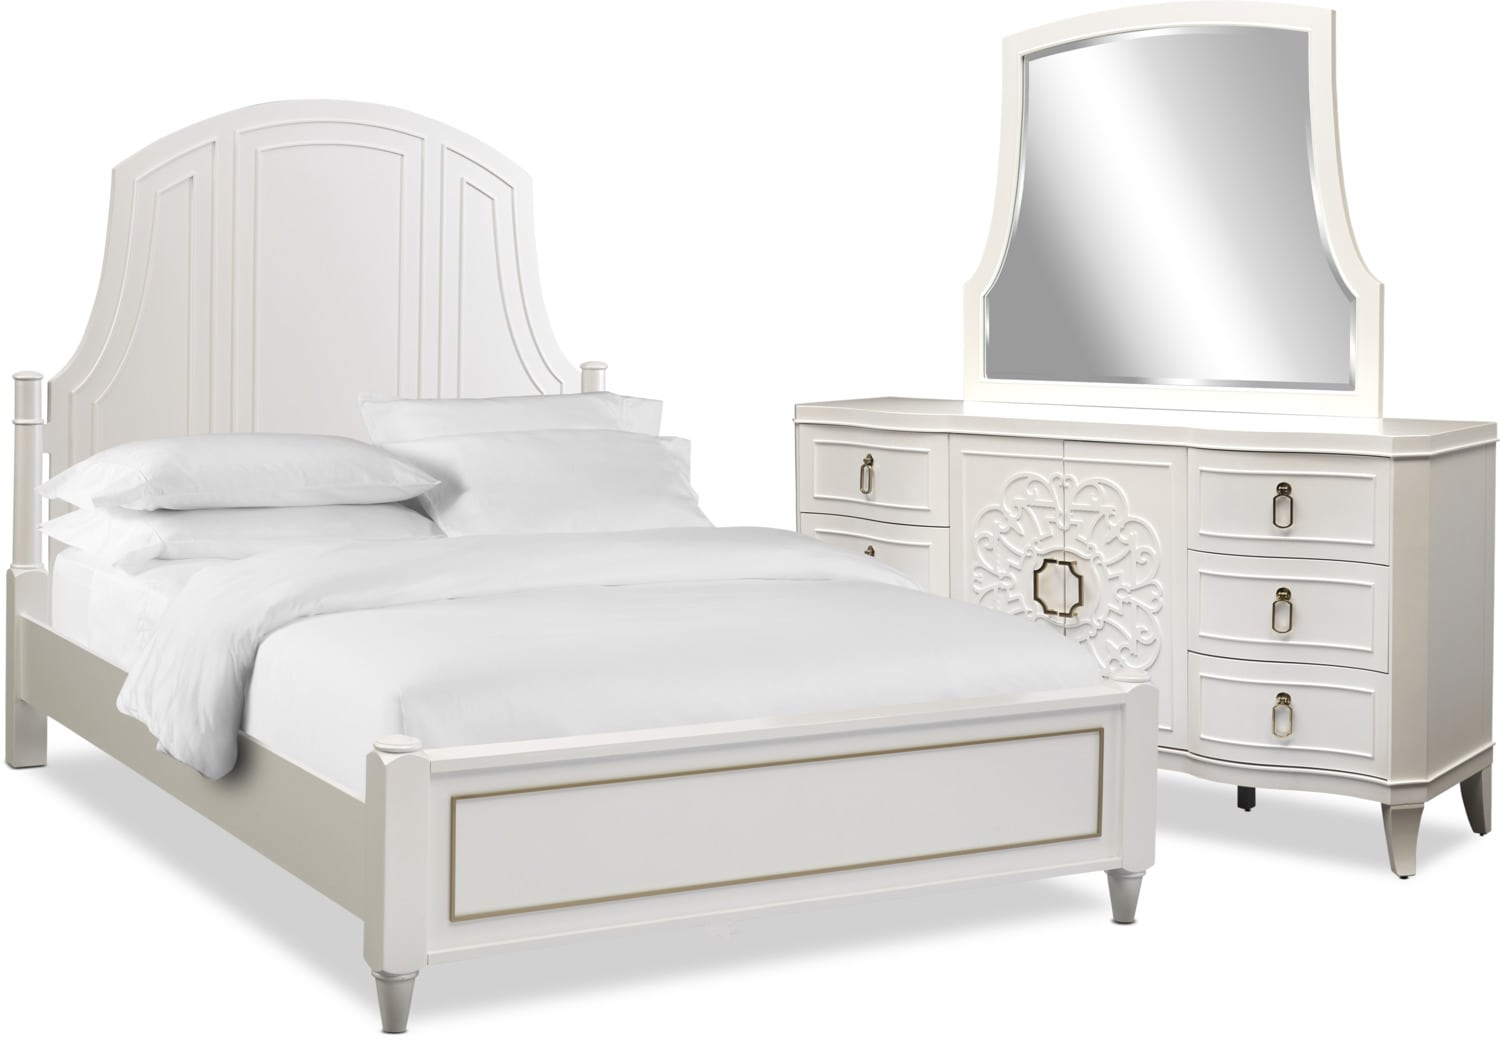 Isabel 5 Piece Bedroom Set With Dresser And Mirror Value